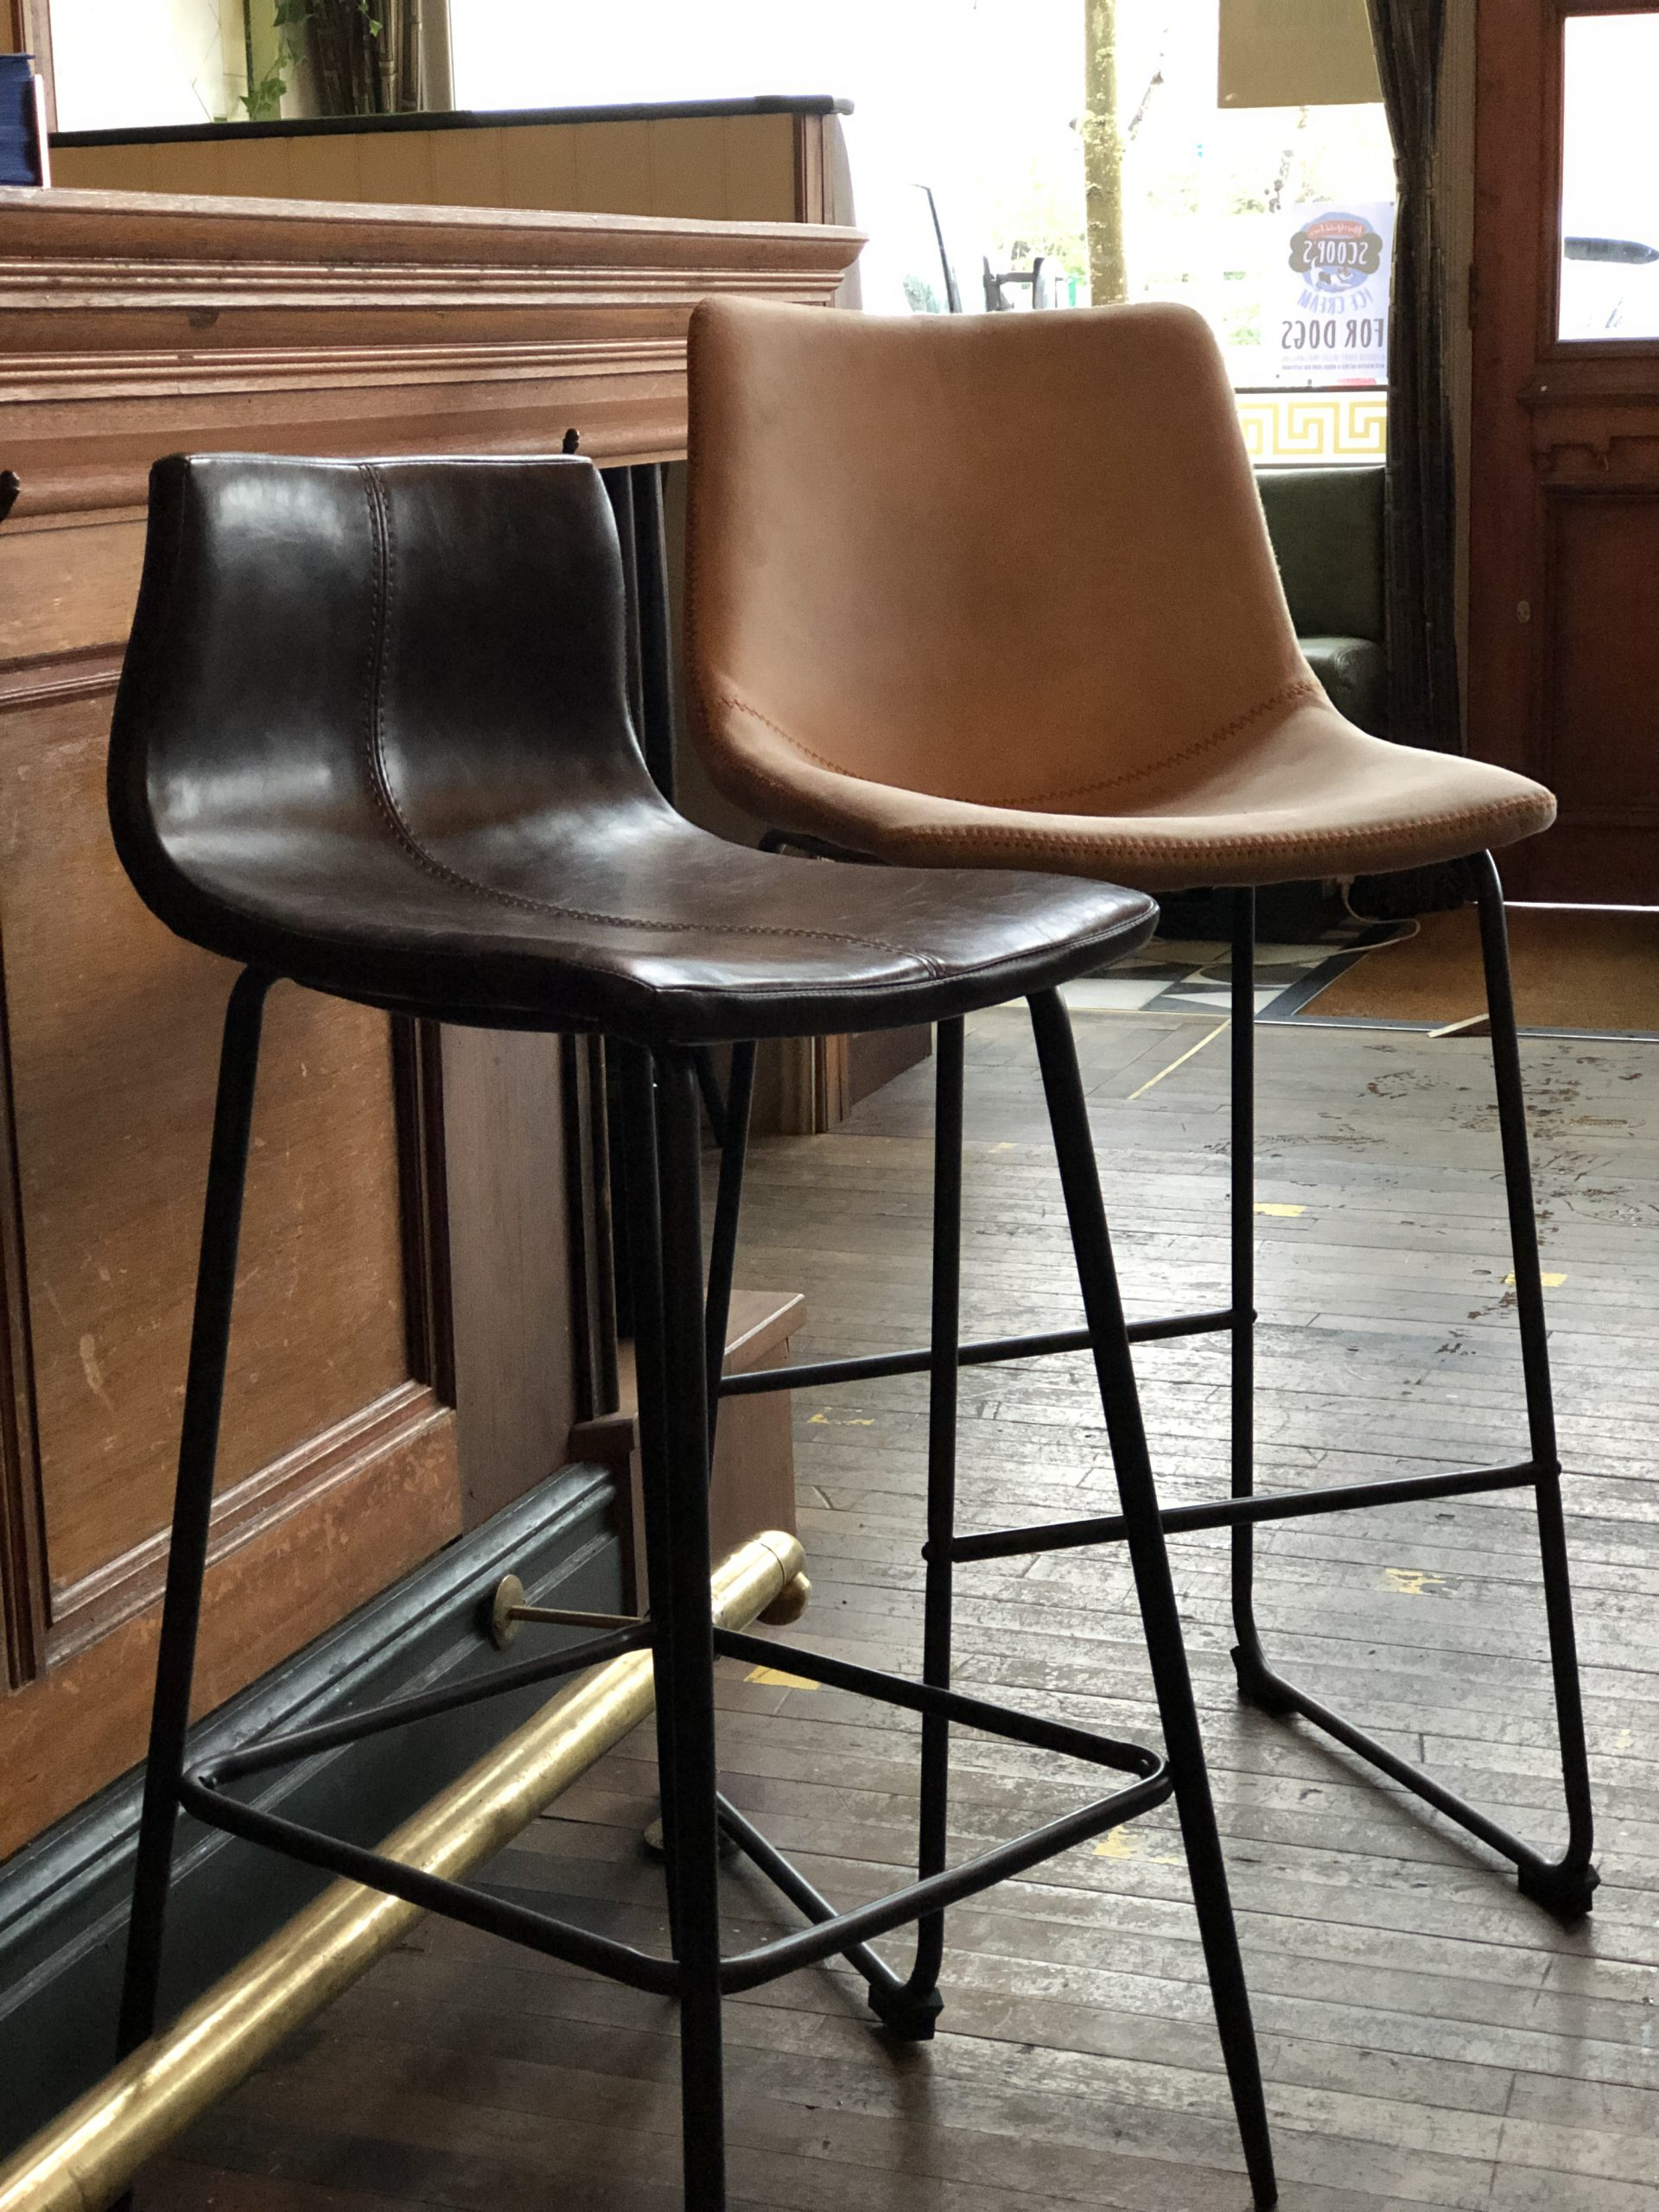 Barracuda Bar Stools